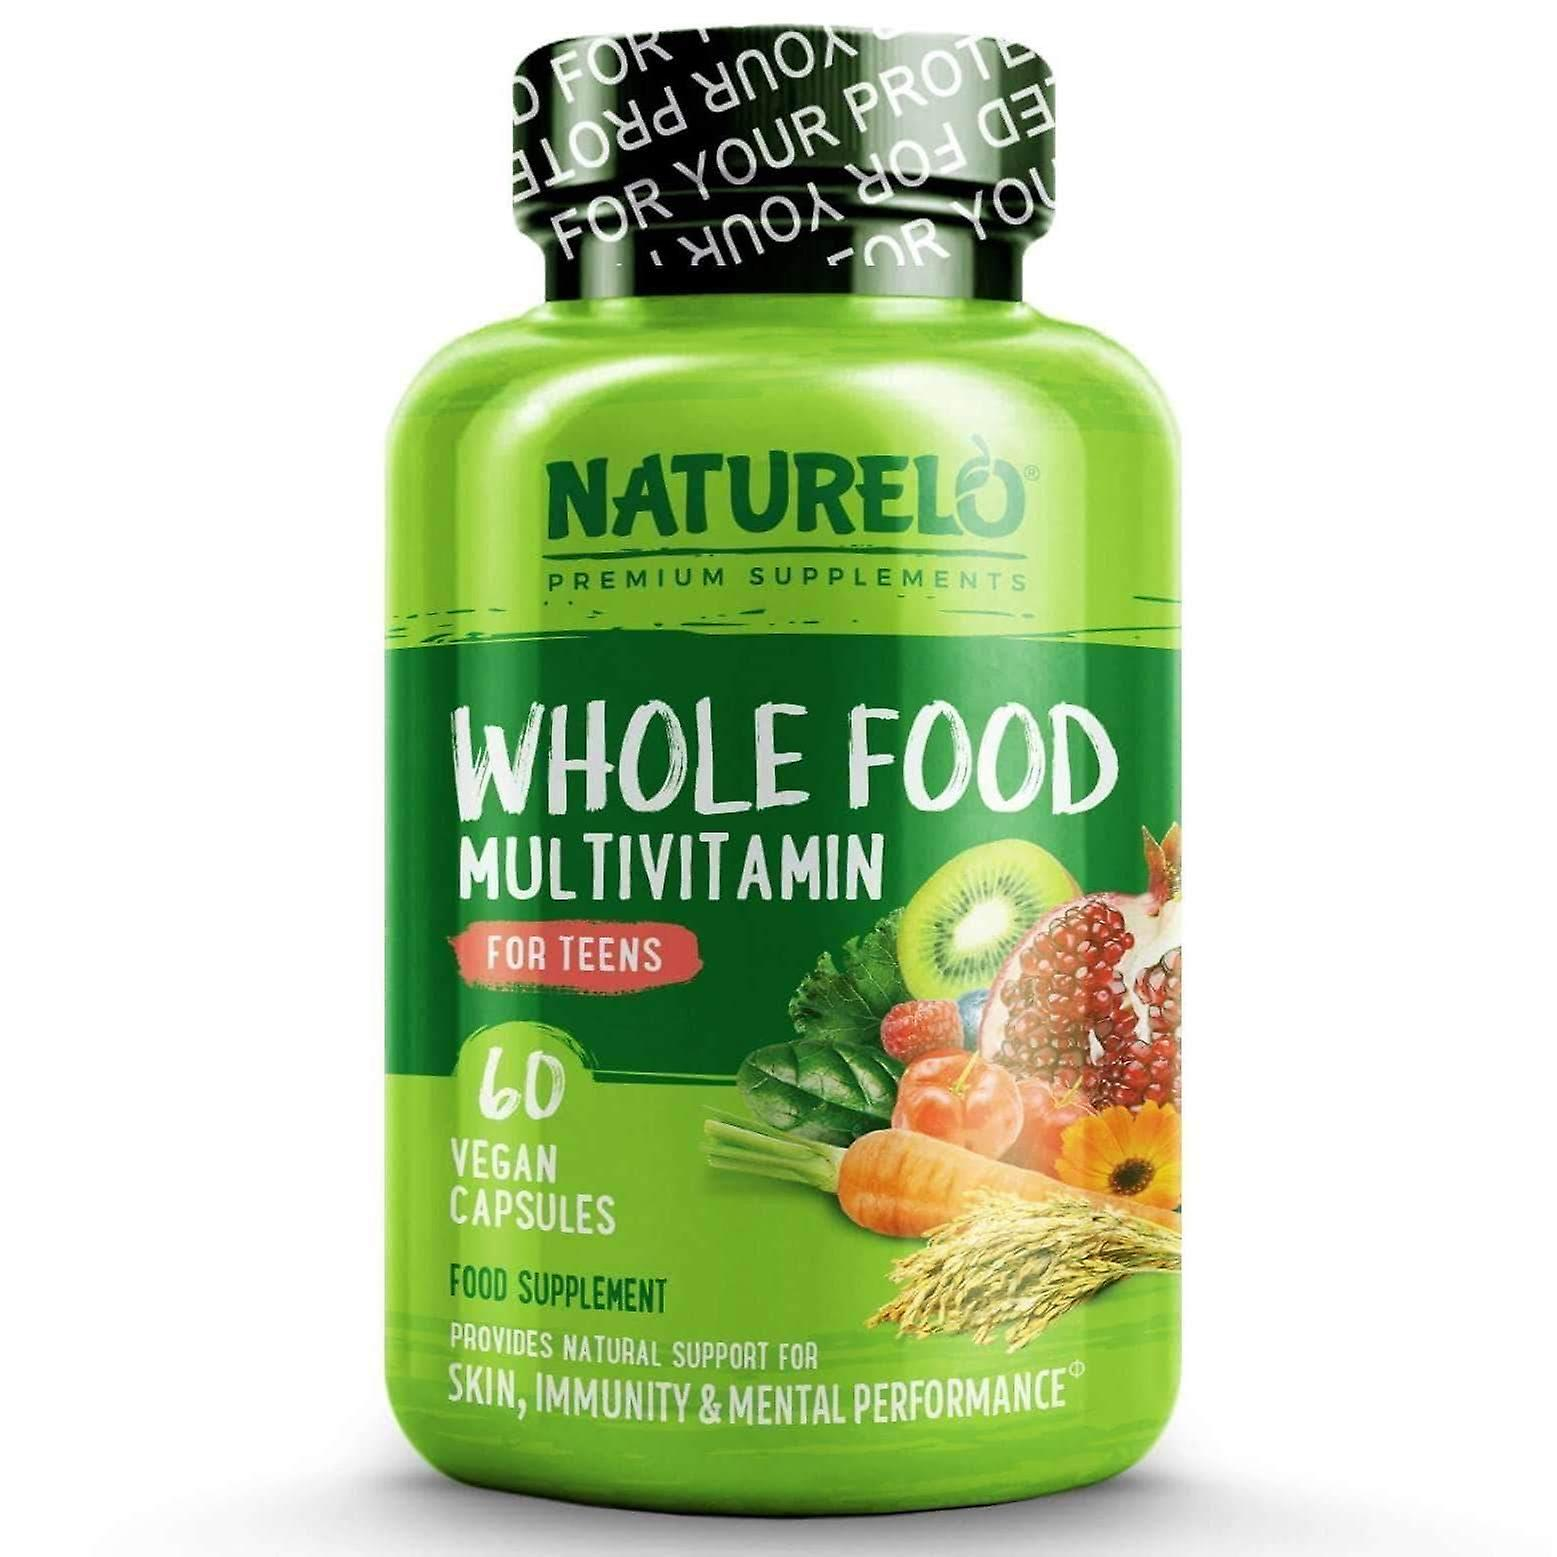 Teen's whole food multivitamin with natural vitamins/minerals - 60 caps | 1 month supply (vegan)